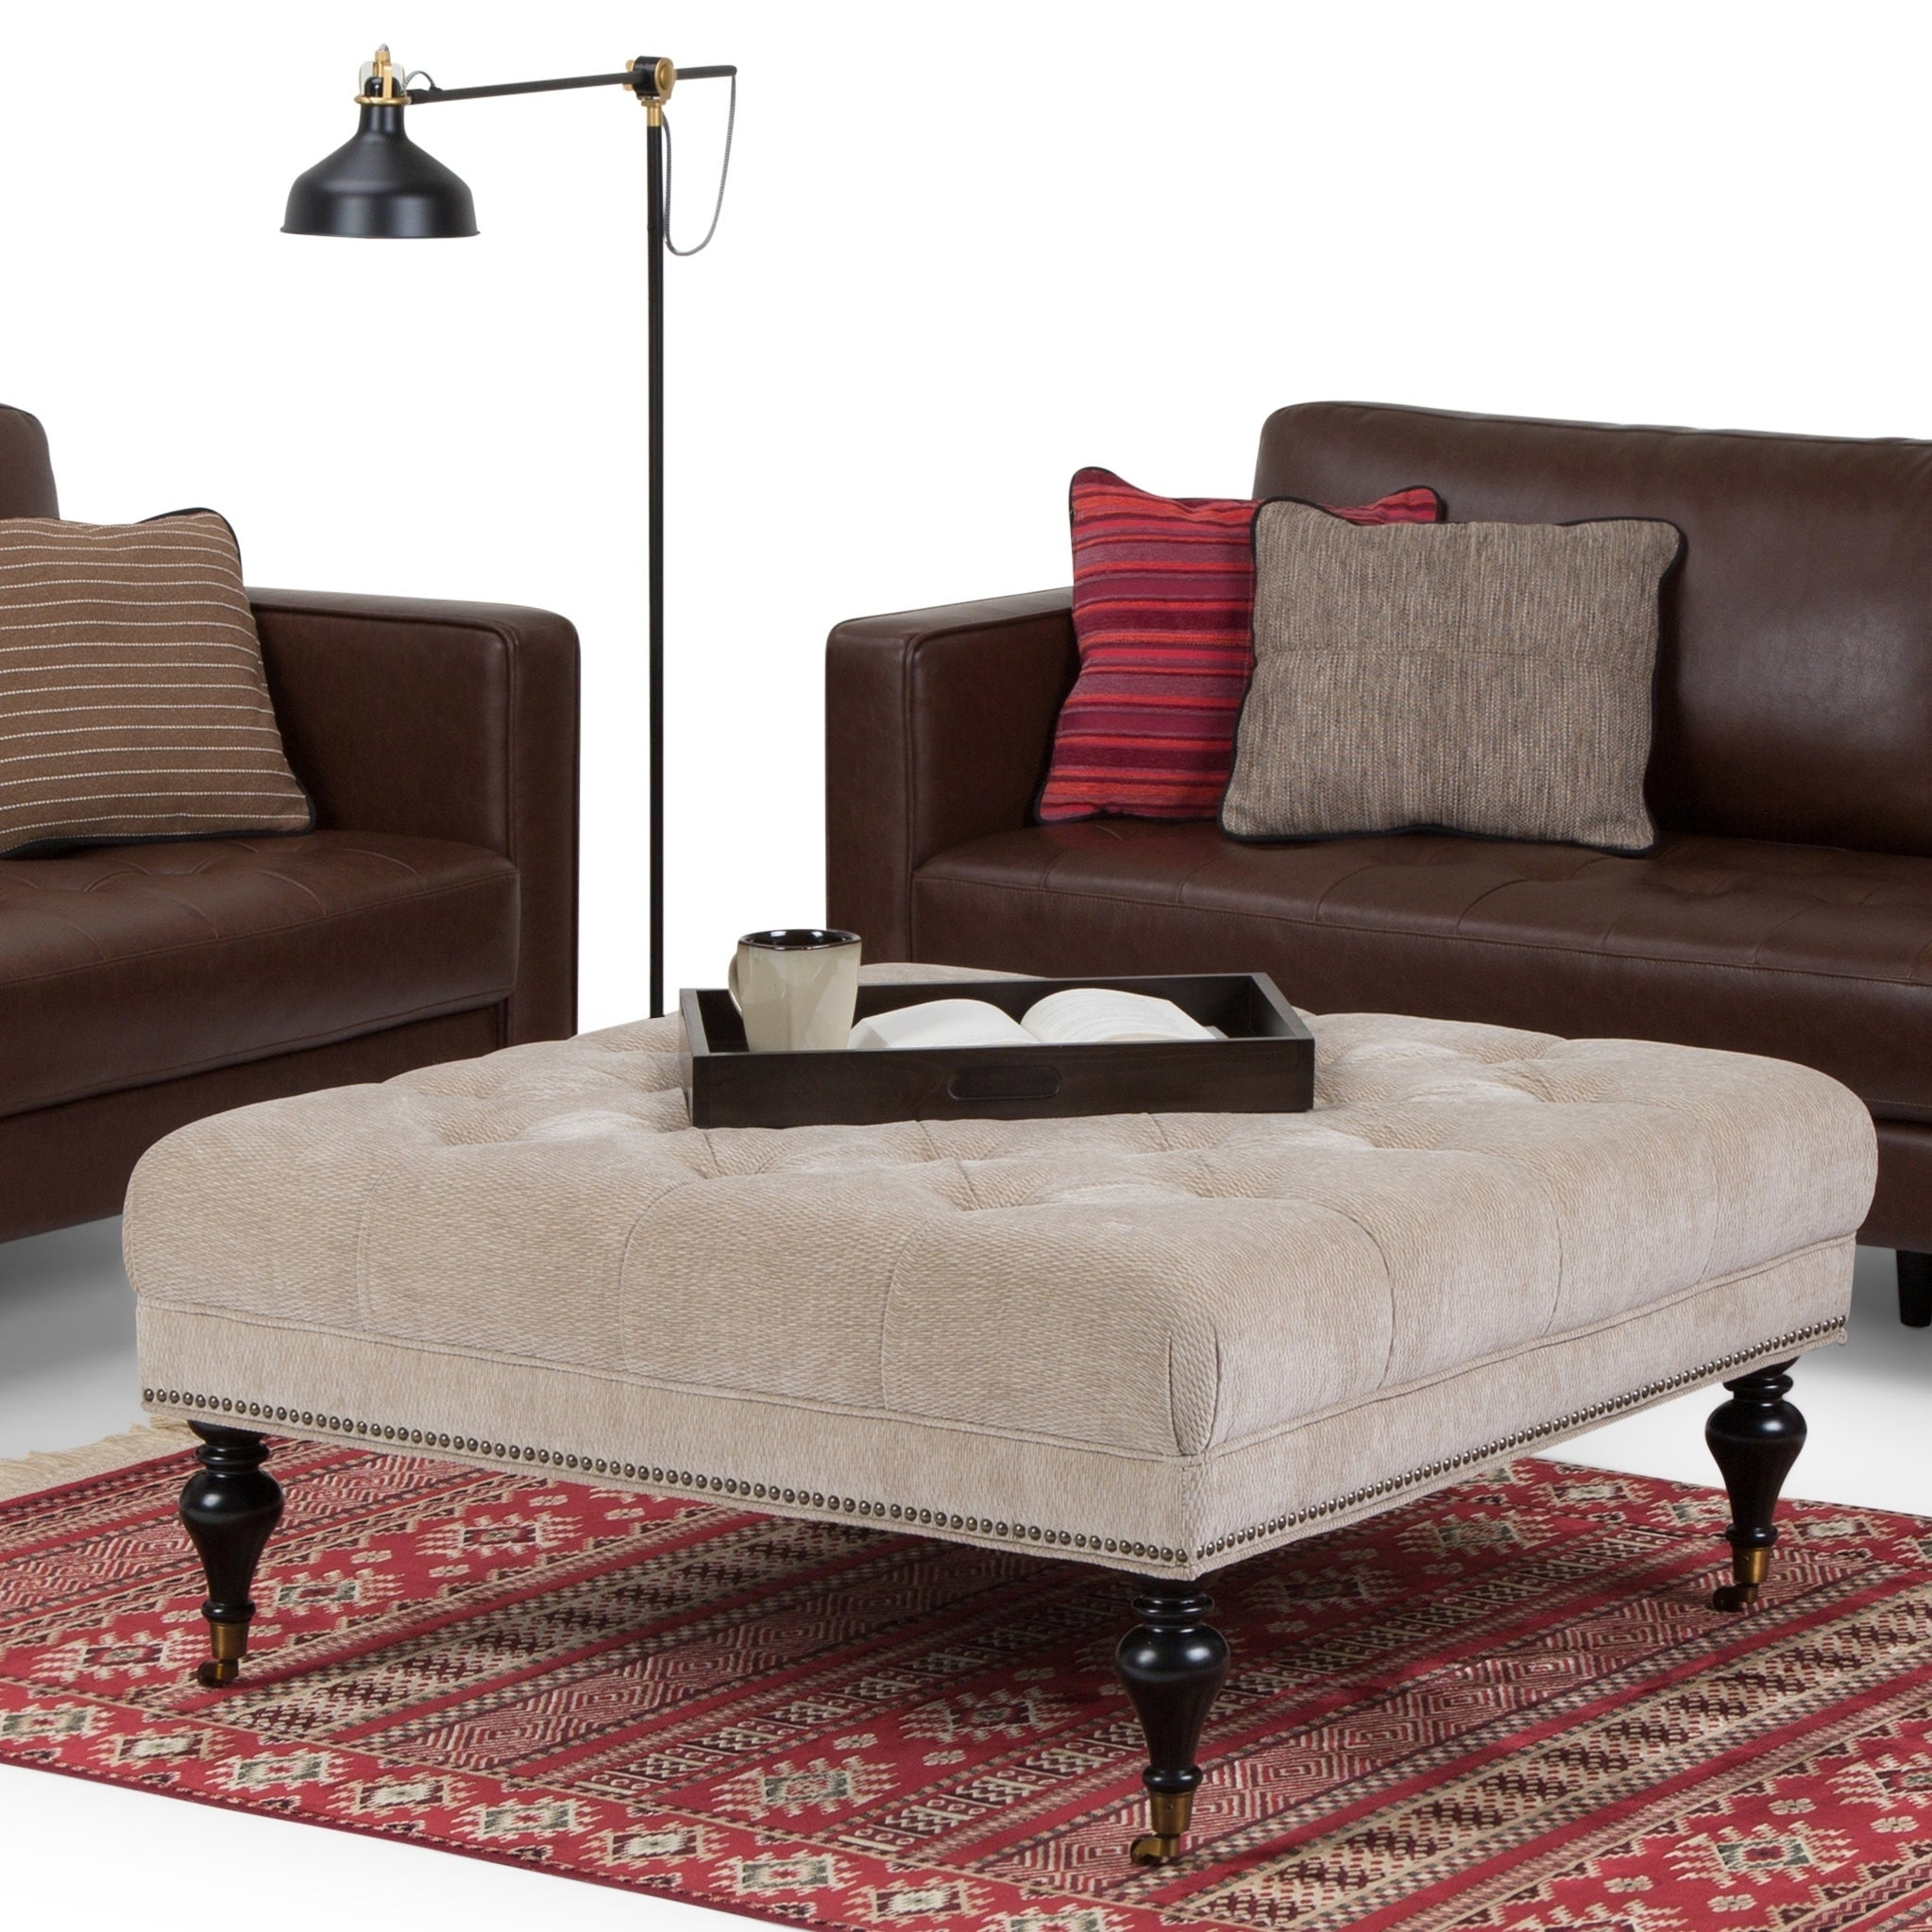 Wyndenhall Marcel Large Square Coffee Table Ottoman Large For Sale